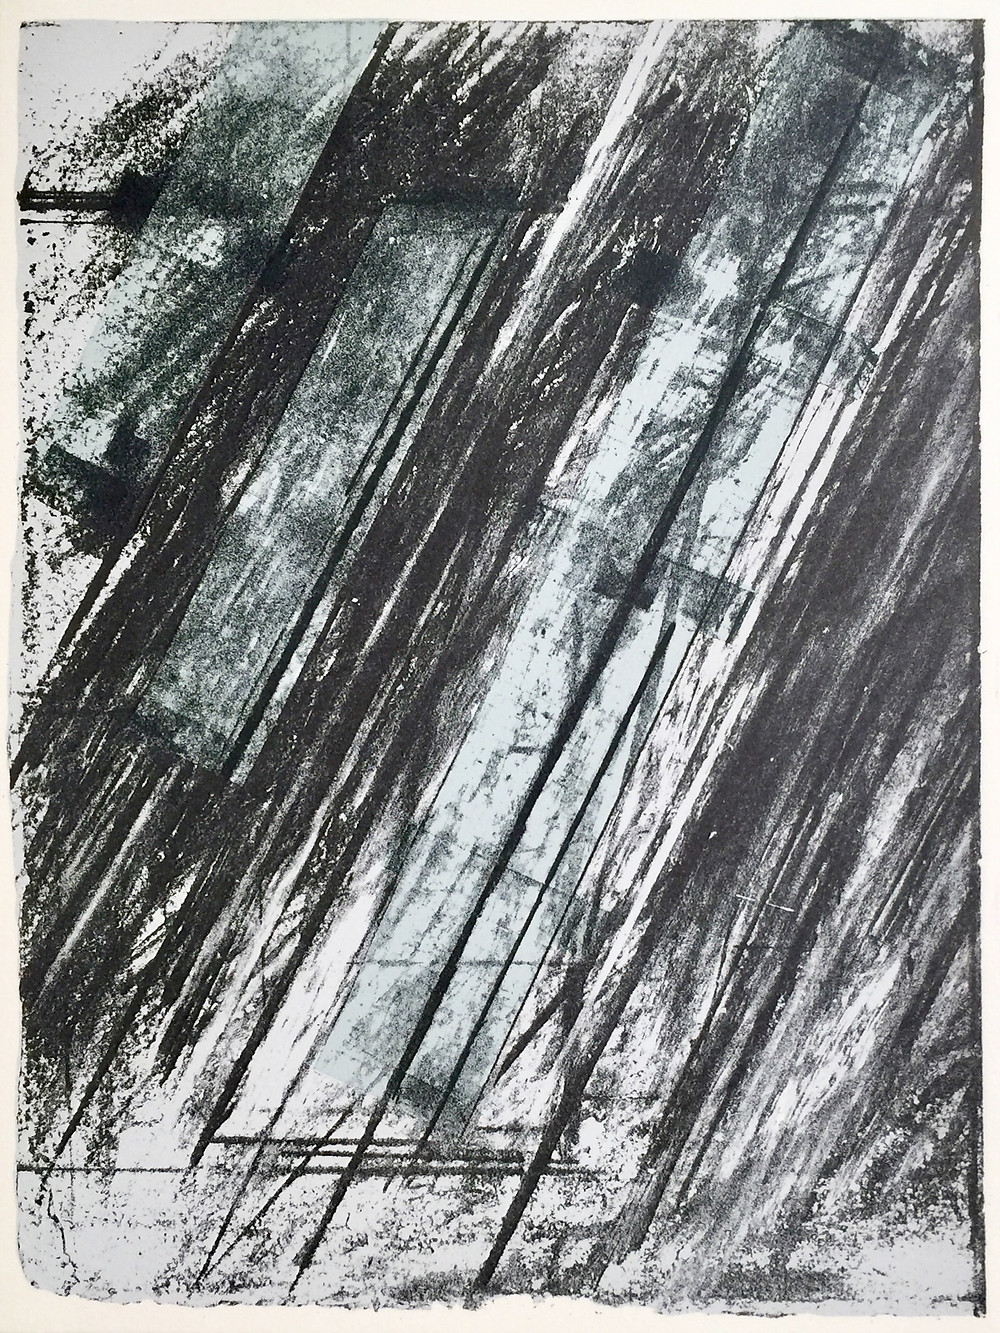 "Untitled, 1973; Lithograph and serigraph on mould made rag paper; Numbered 102/300, initialed C.T., and dated 73 in pencil lower edge verso; Stamped © Copyright 1973 By Cy Twombly Printed At Styria Studio in black ink, upper right verso; Published by Experiments in Art and Technology, Inc.; Catalog Raisonne: Bastian 38; Size - Sheet 12 x 9""; Unframed."